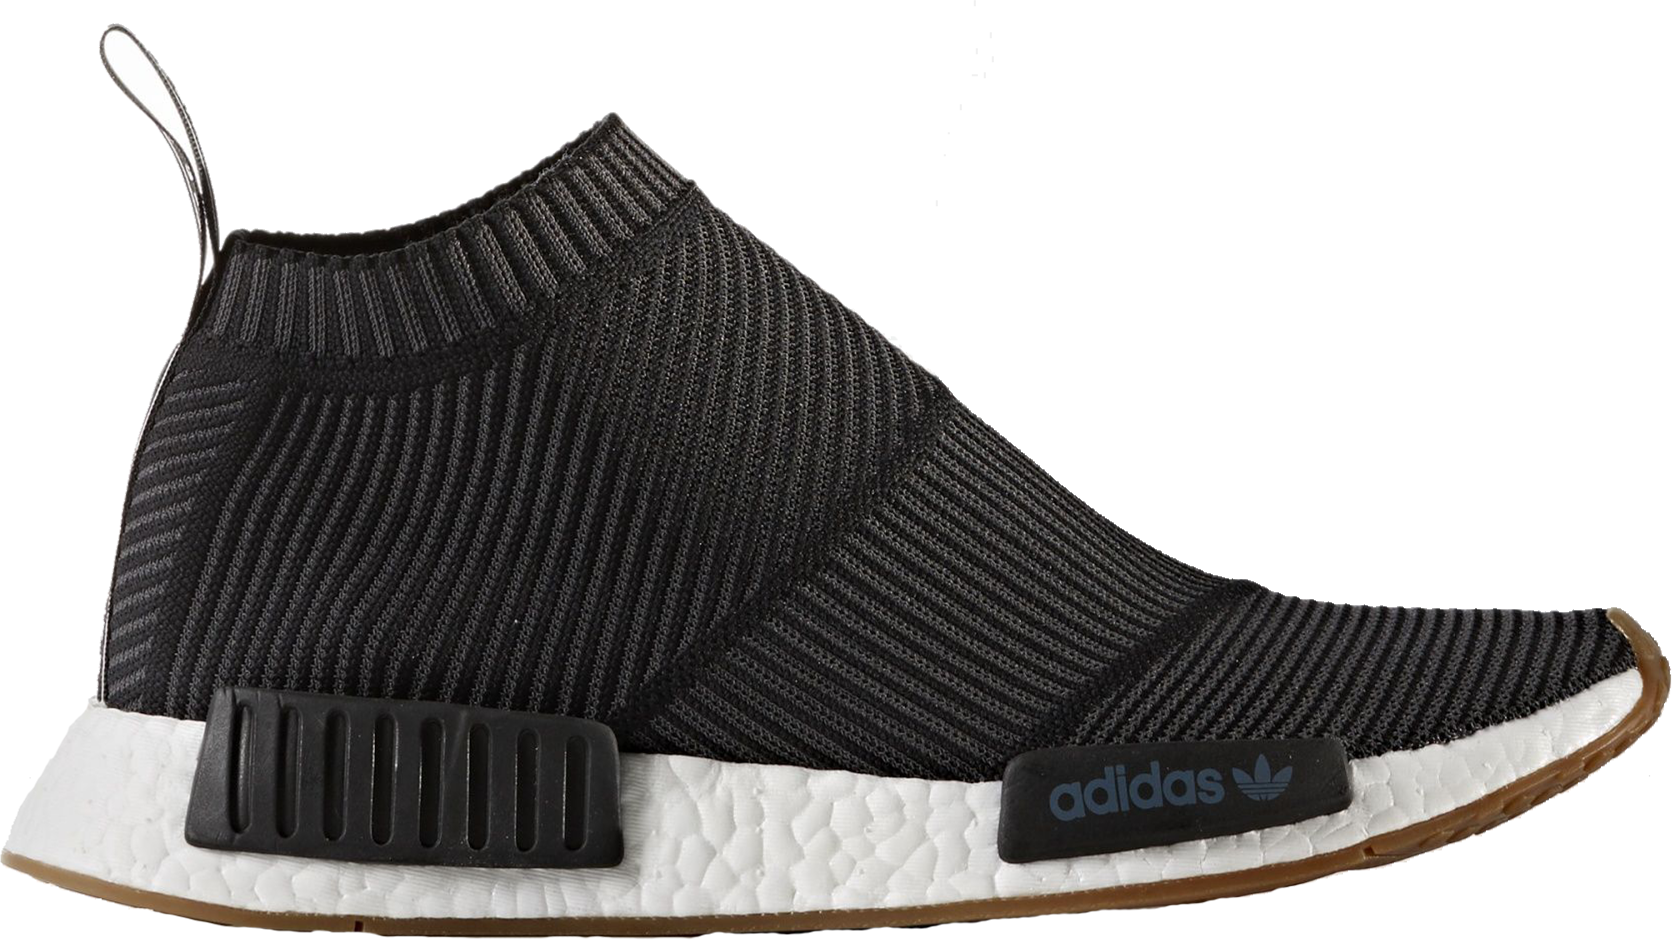 adidas NMD City Sock Gum Pack Black